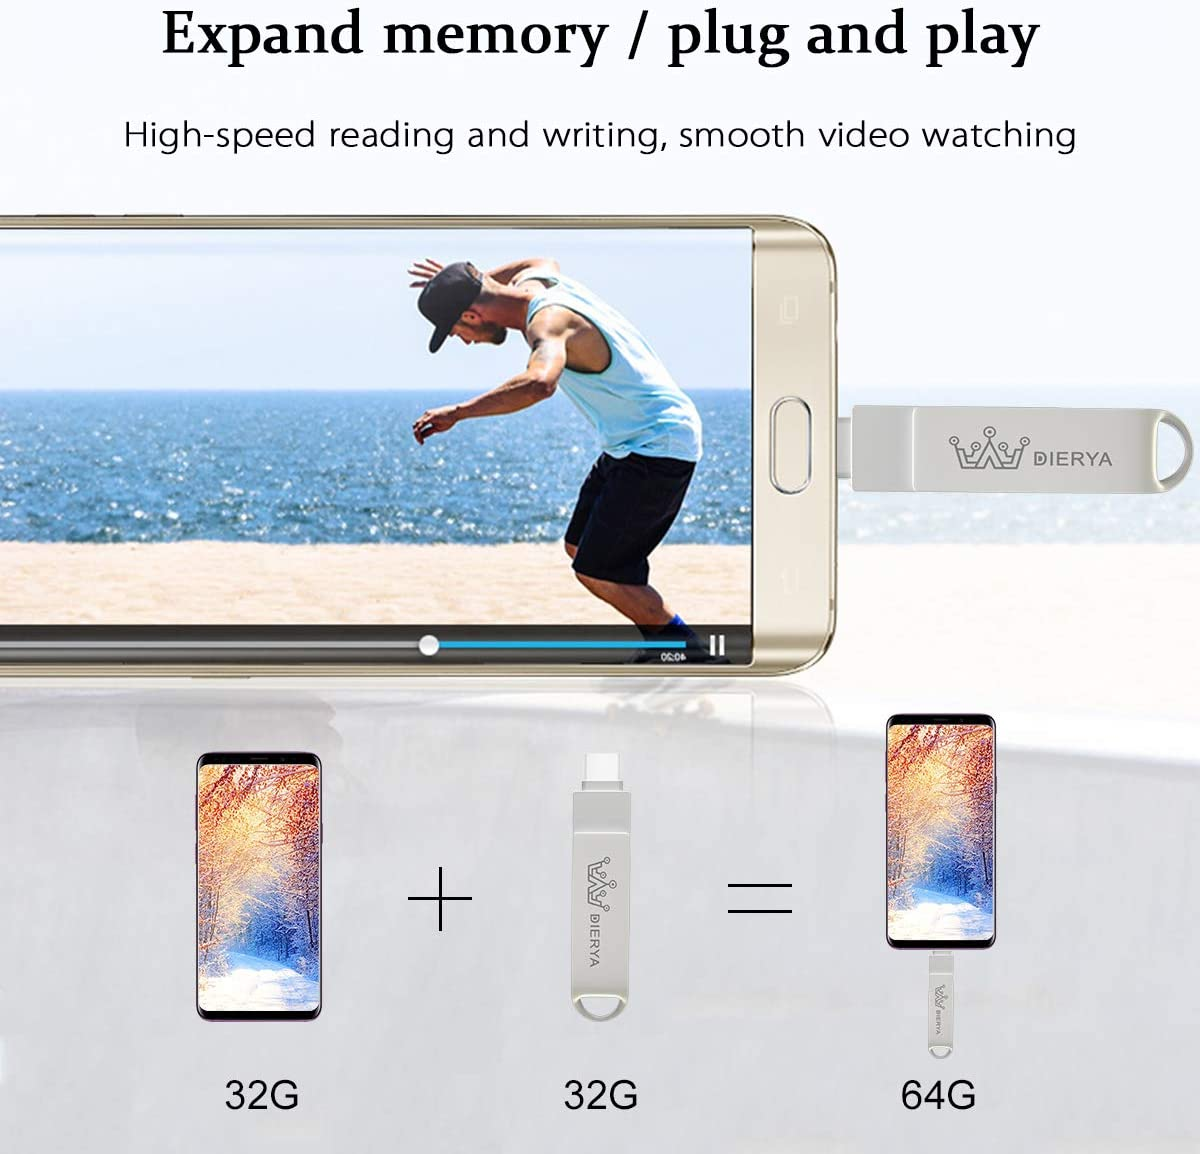 3 in 1 External Storage Memory Stick Expansion Jump Drive Compatible with Android Samsung Phones Type C Devices and PC DIERYA USB C 3.0 Flash Drives 128GB Silver